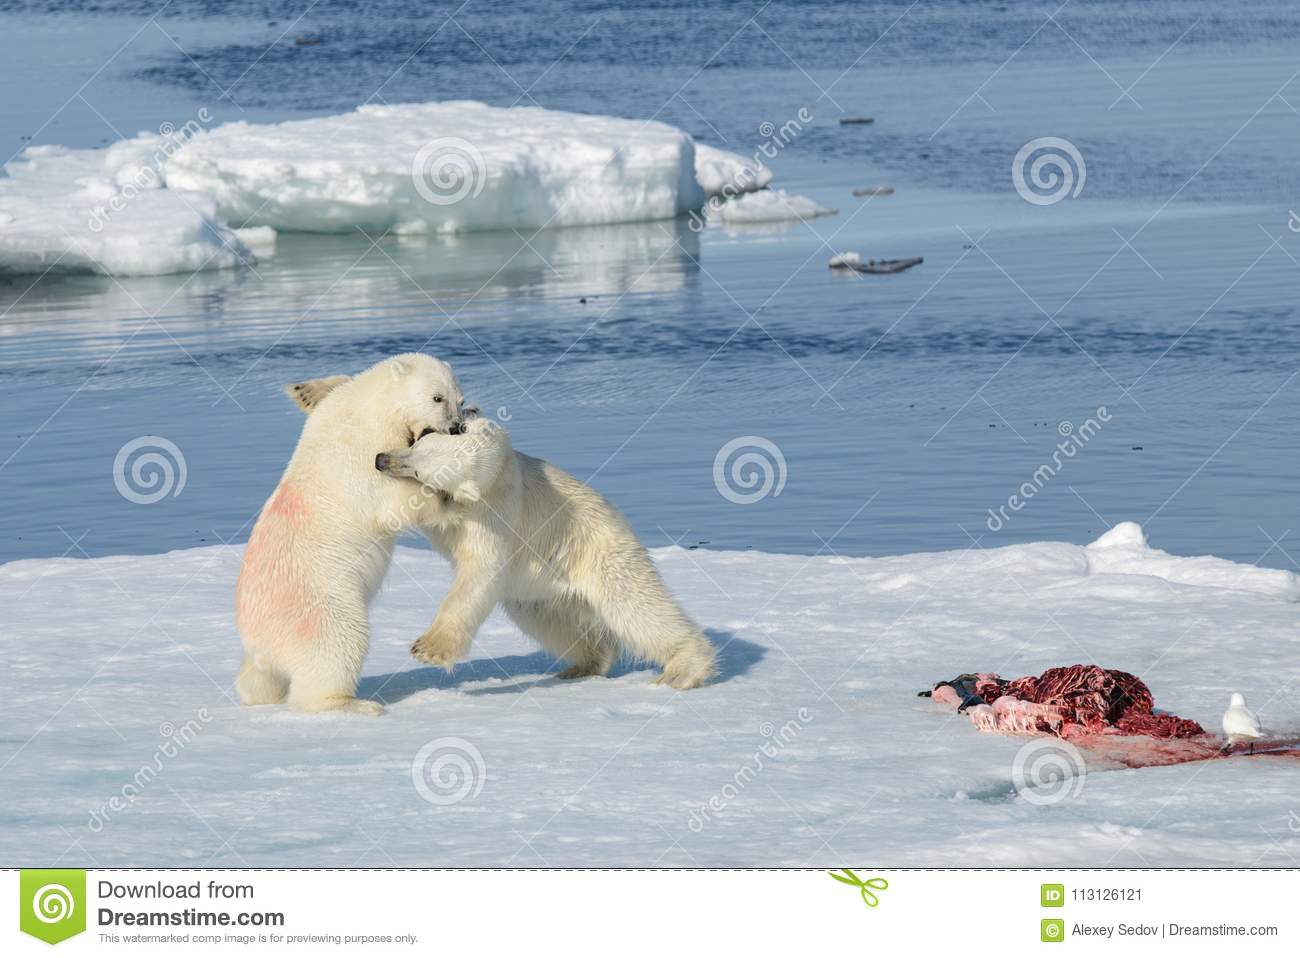 Two polar bear cubs playing together on the ice